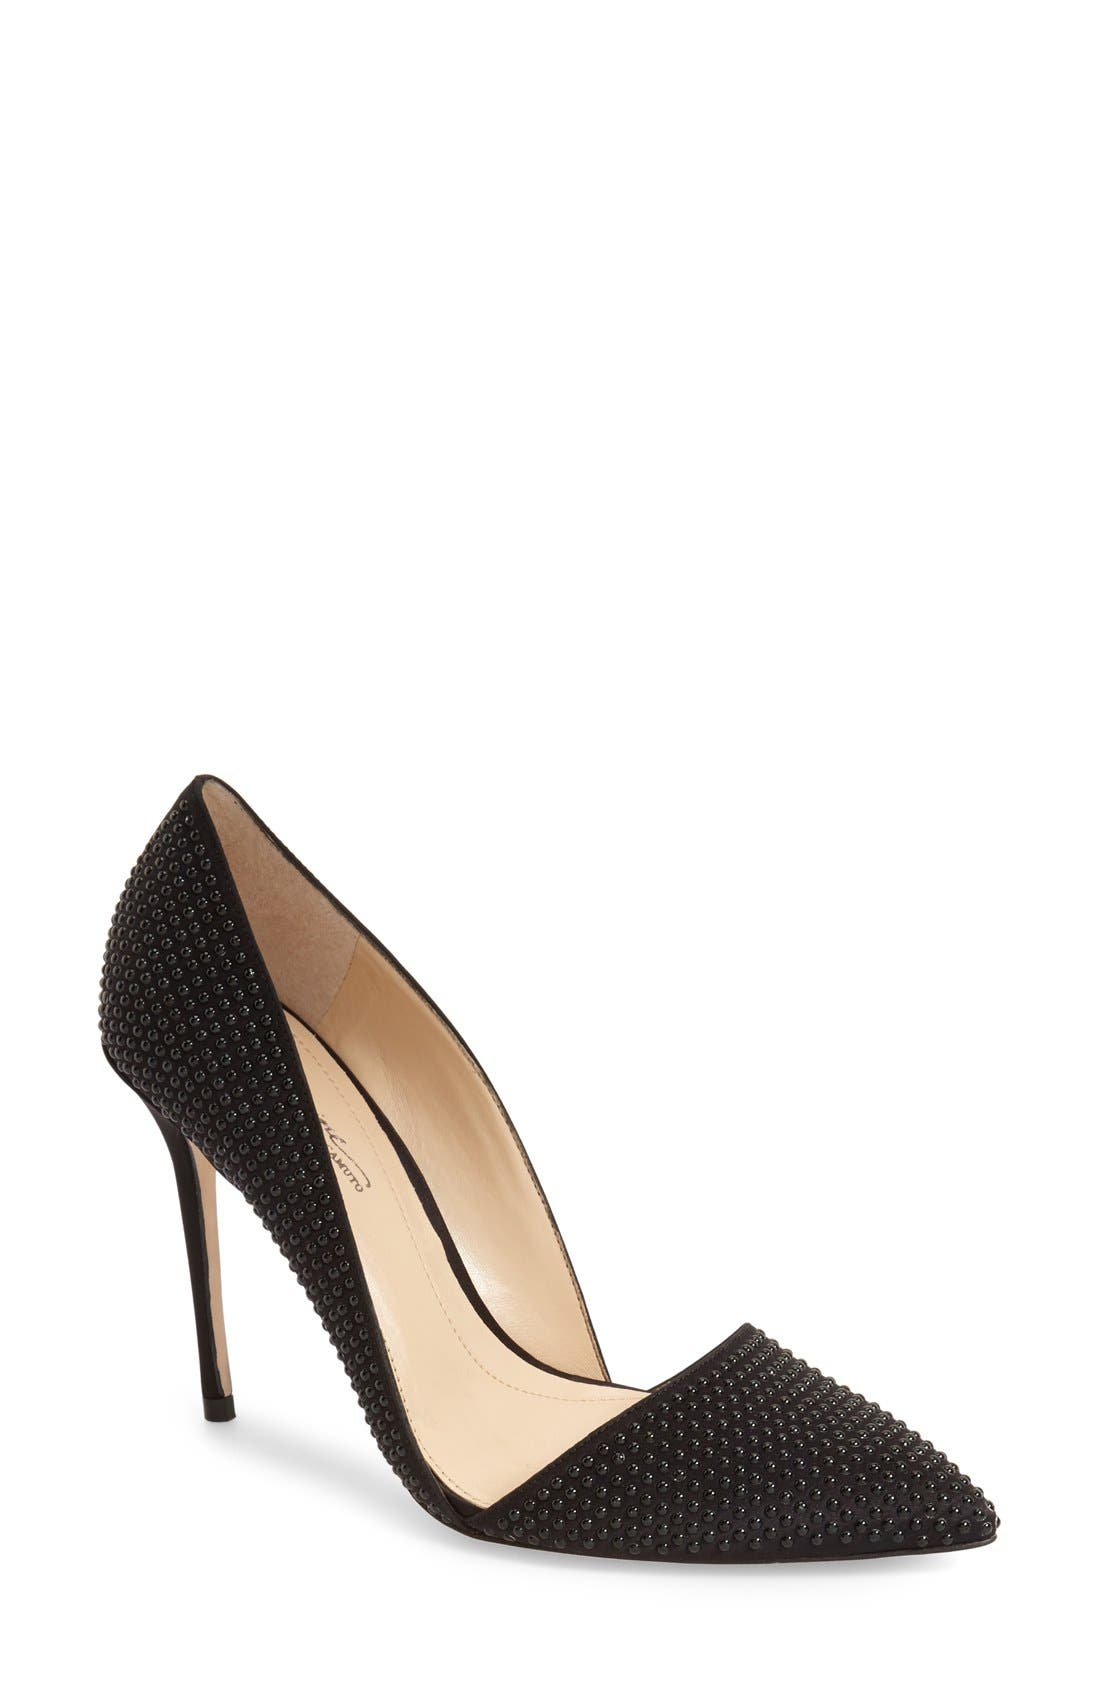 Imagine Vince Camuto 'Ossie' d'Orsay Pump,                         Main,                         color, 001